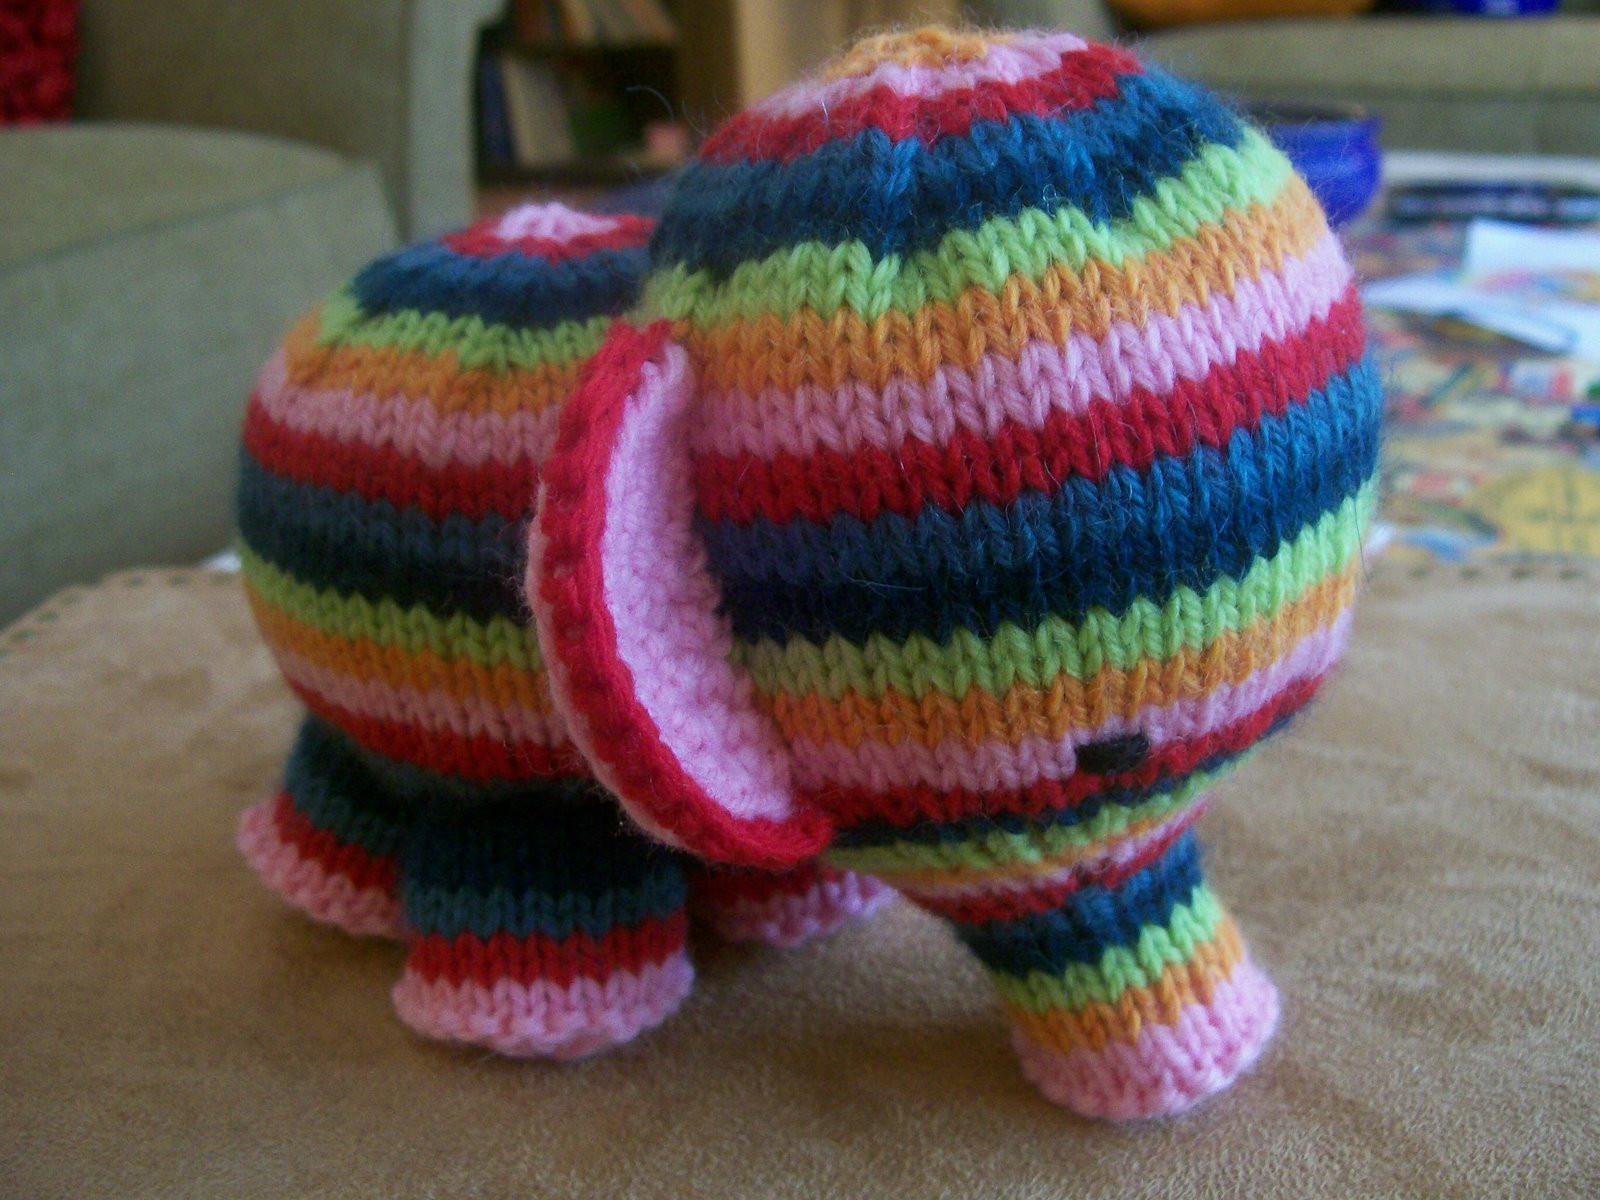 Inspirational 400 Of the Best Free Knitting toy Patterns Line Knitting Design Of Incredible 42 Images Knitting Design